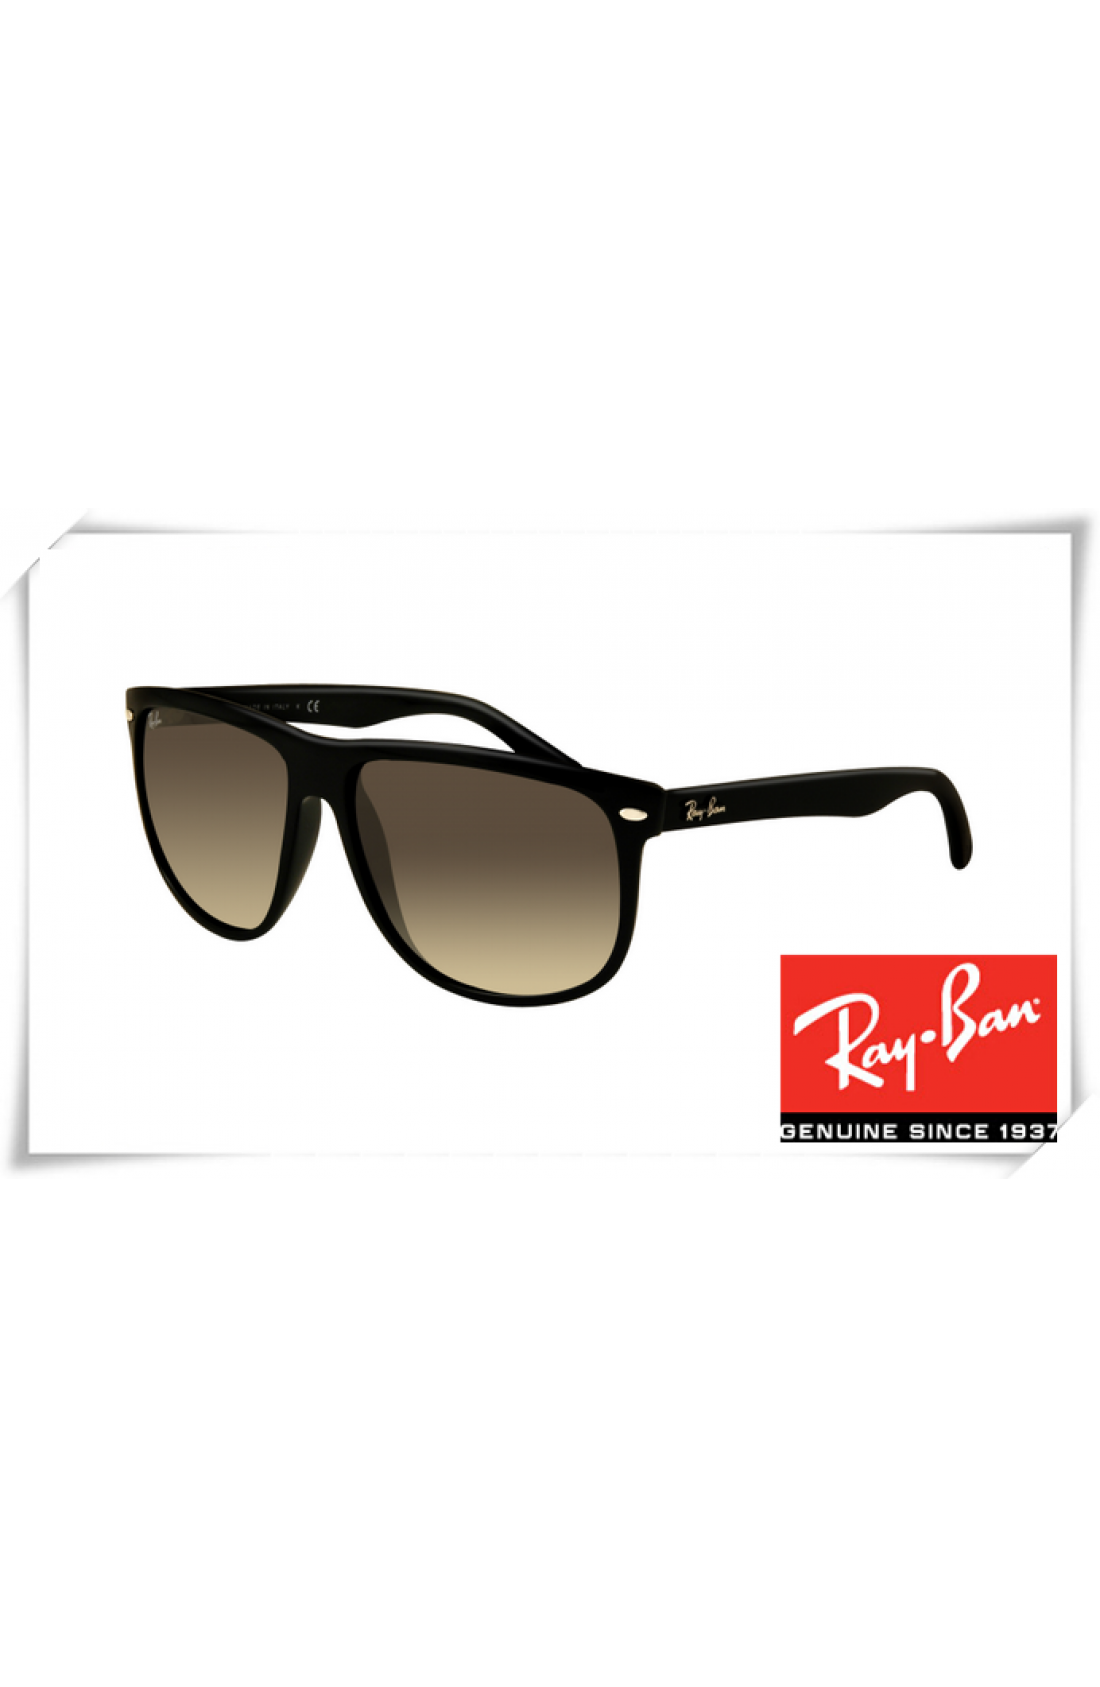 6a2727be663 Cheap Ray Ban RB4147 Sunglasses Black Frame Grey Gradient Lens Wholesale